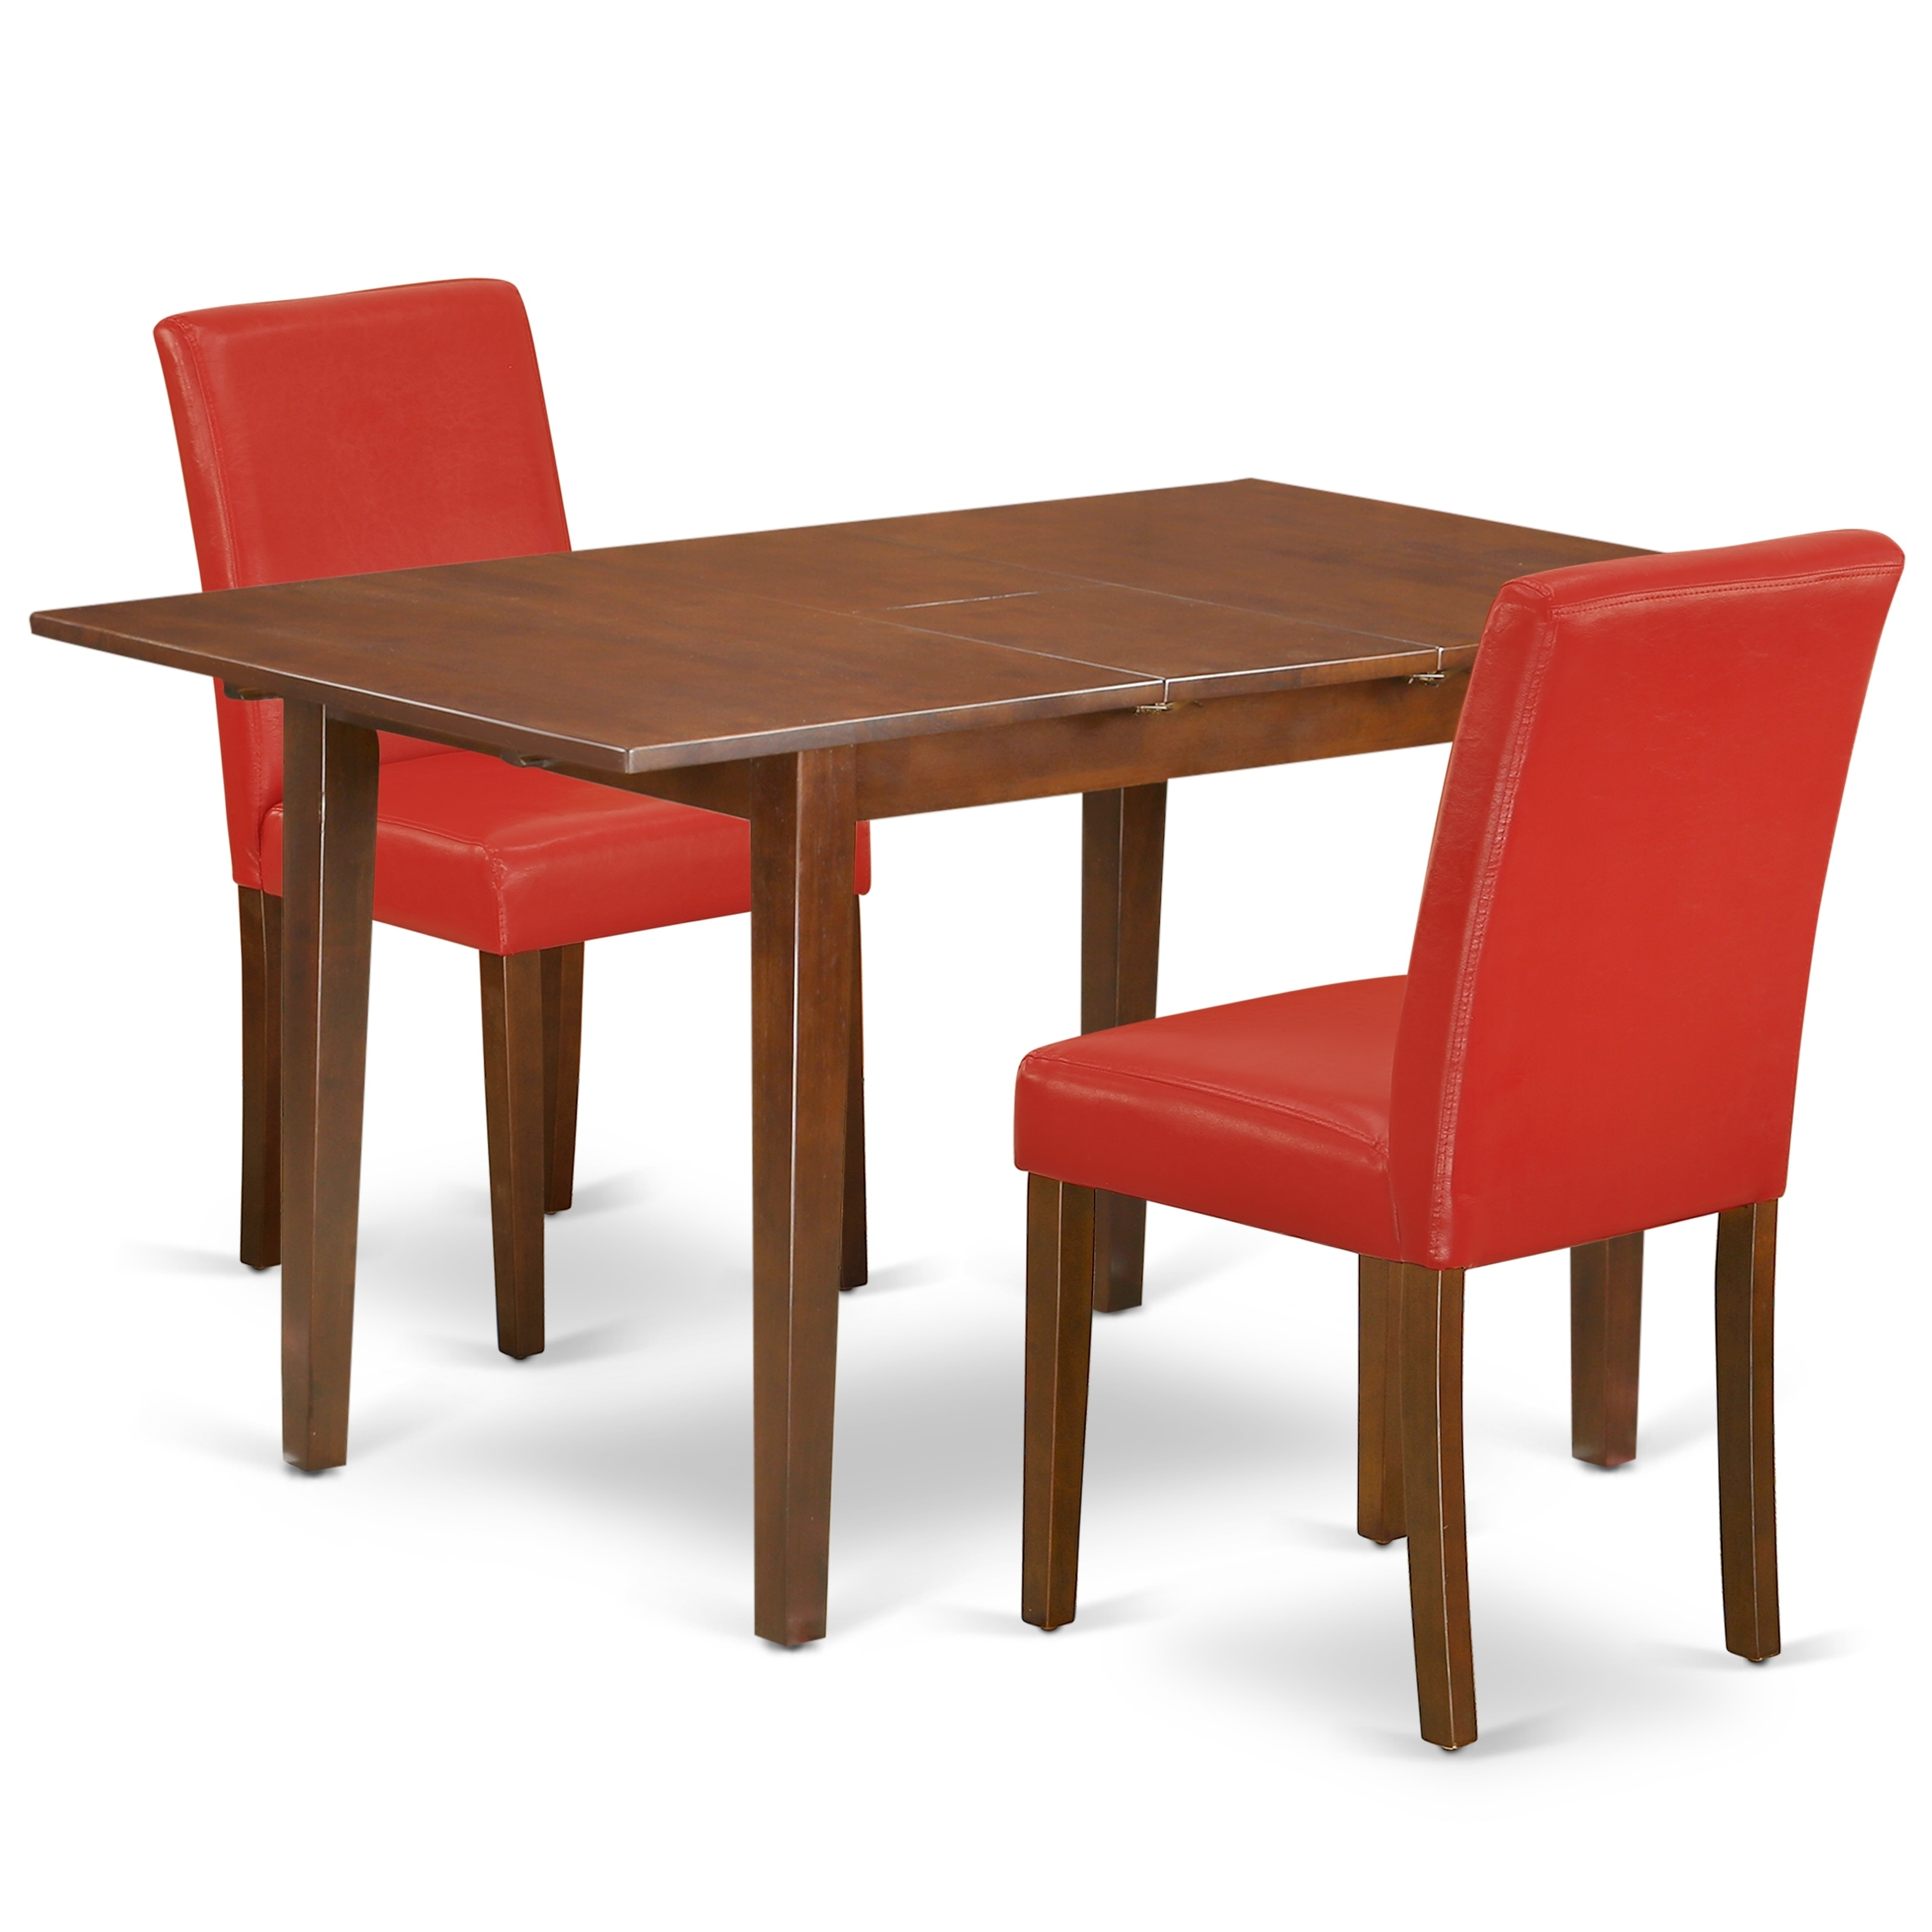 42 54 Inch Table And Parson Chairs